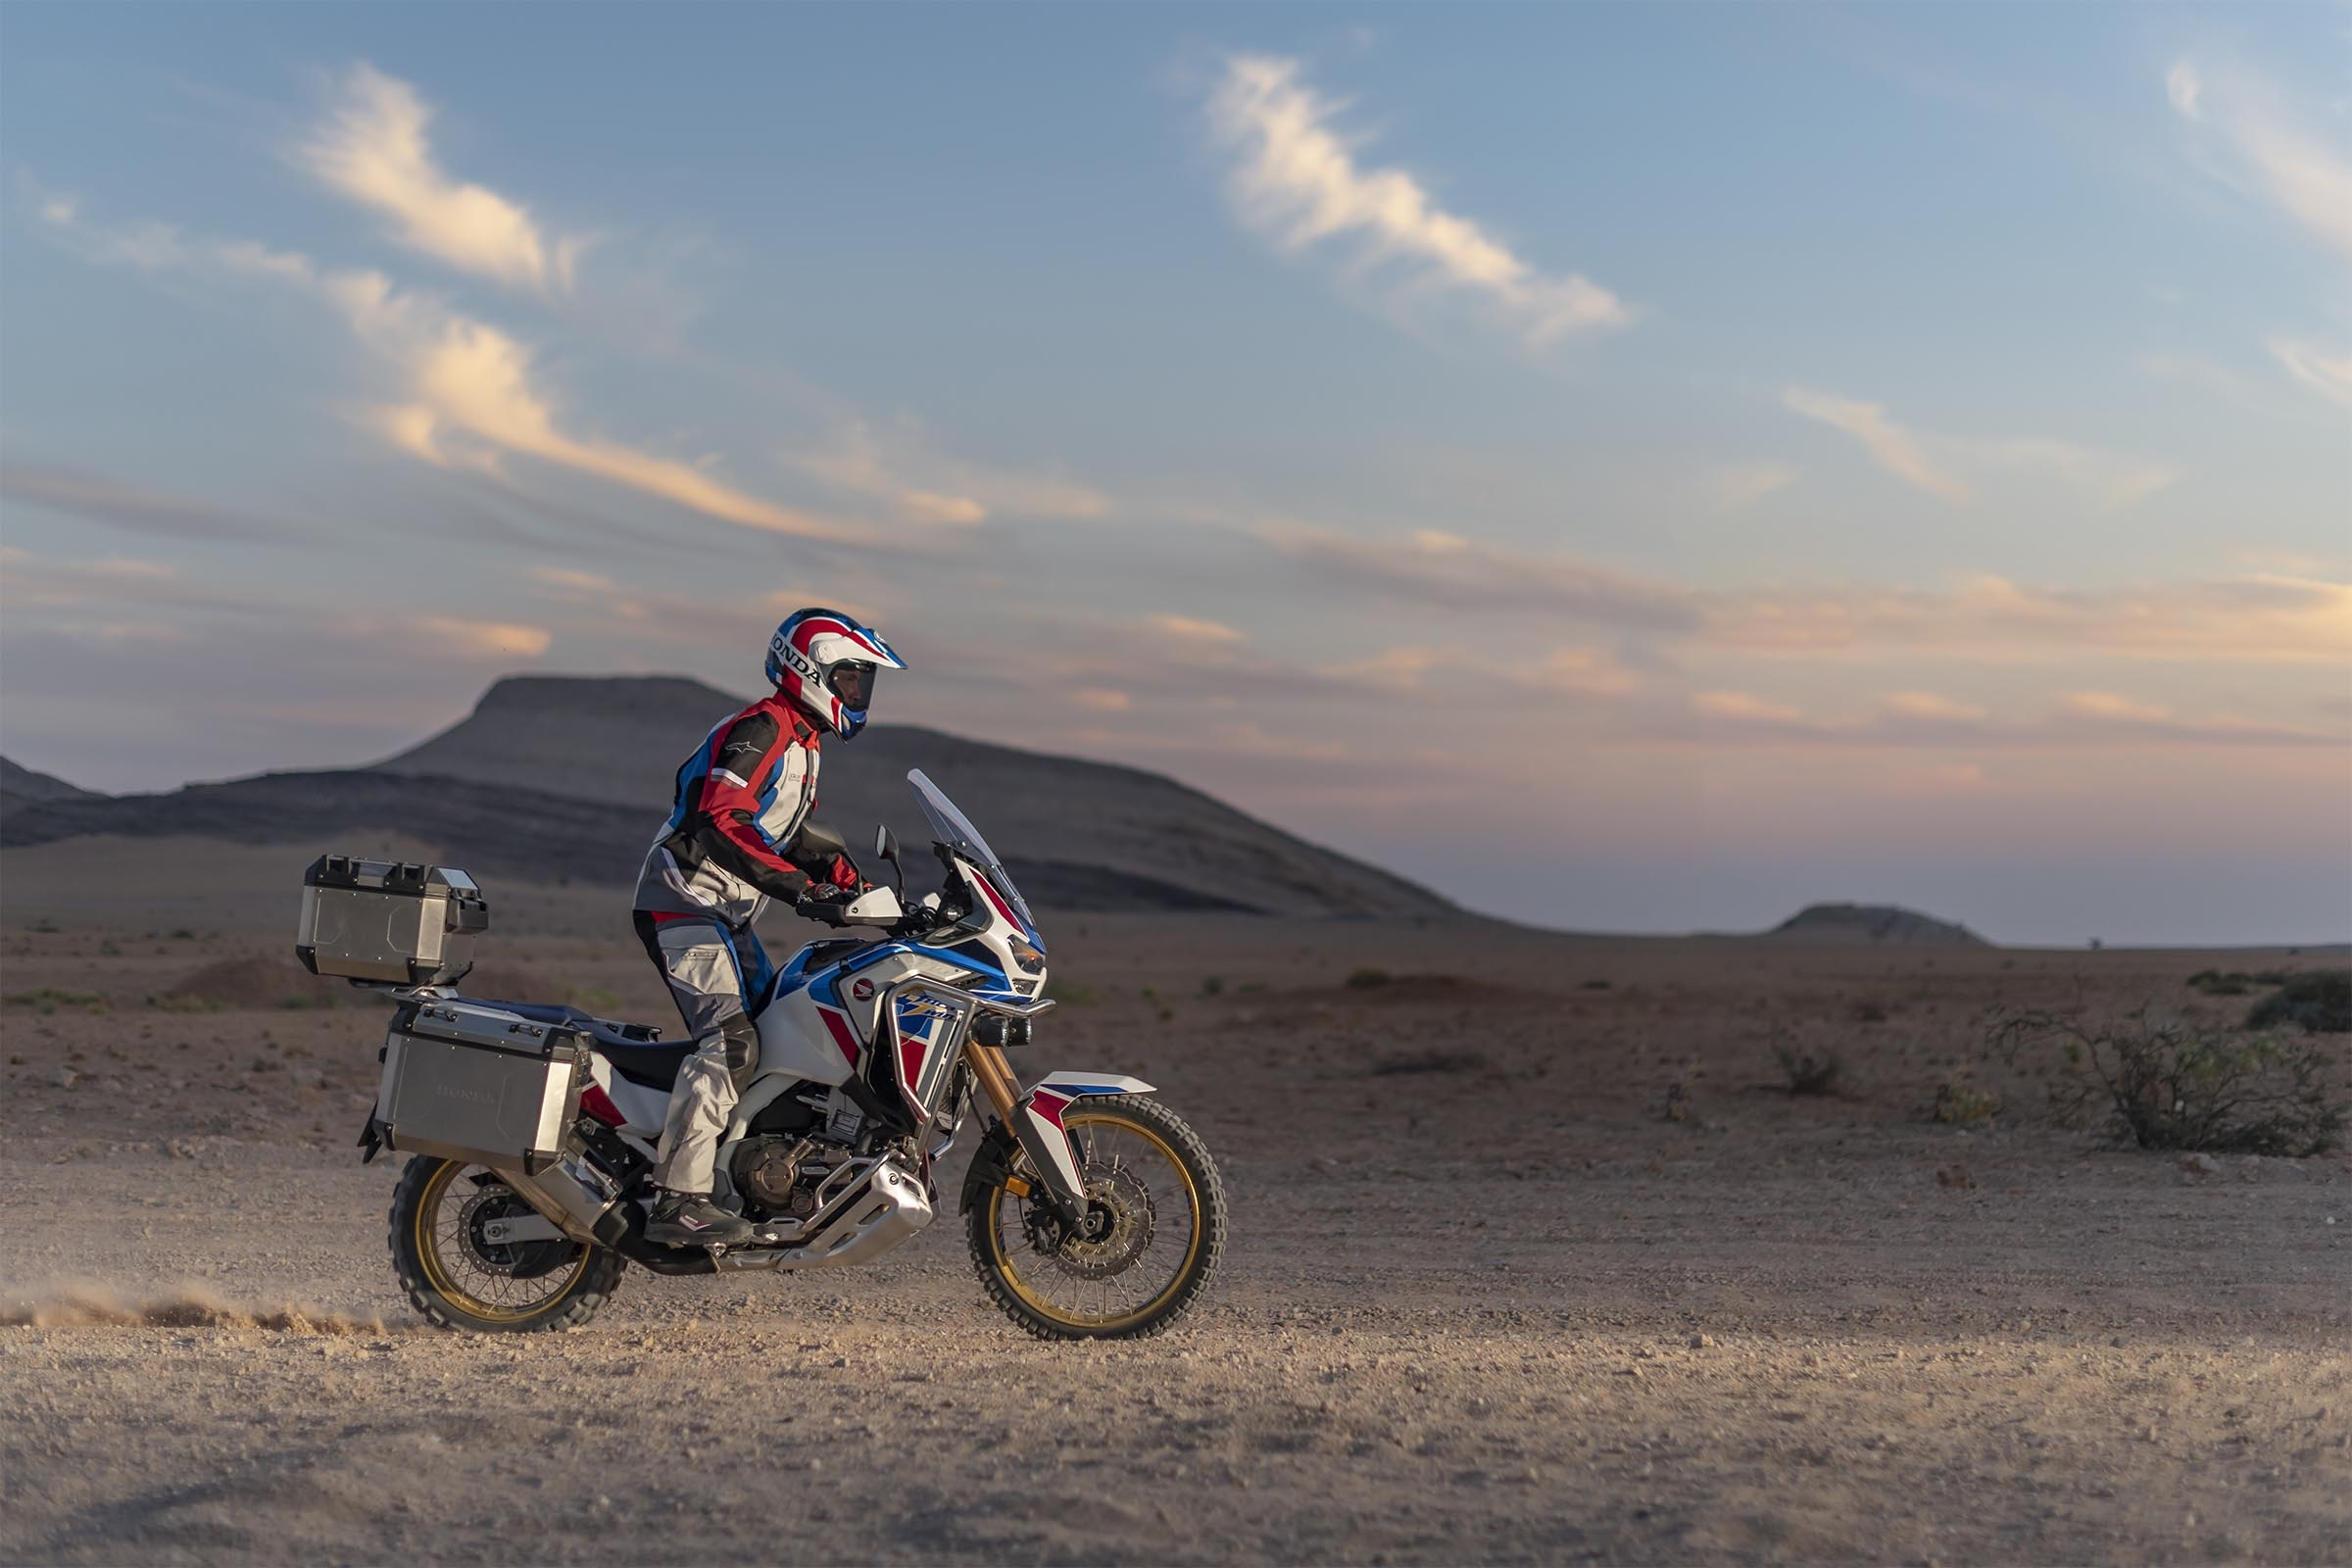 2020 Honda Africa Twin Riding In The Desert